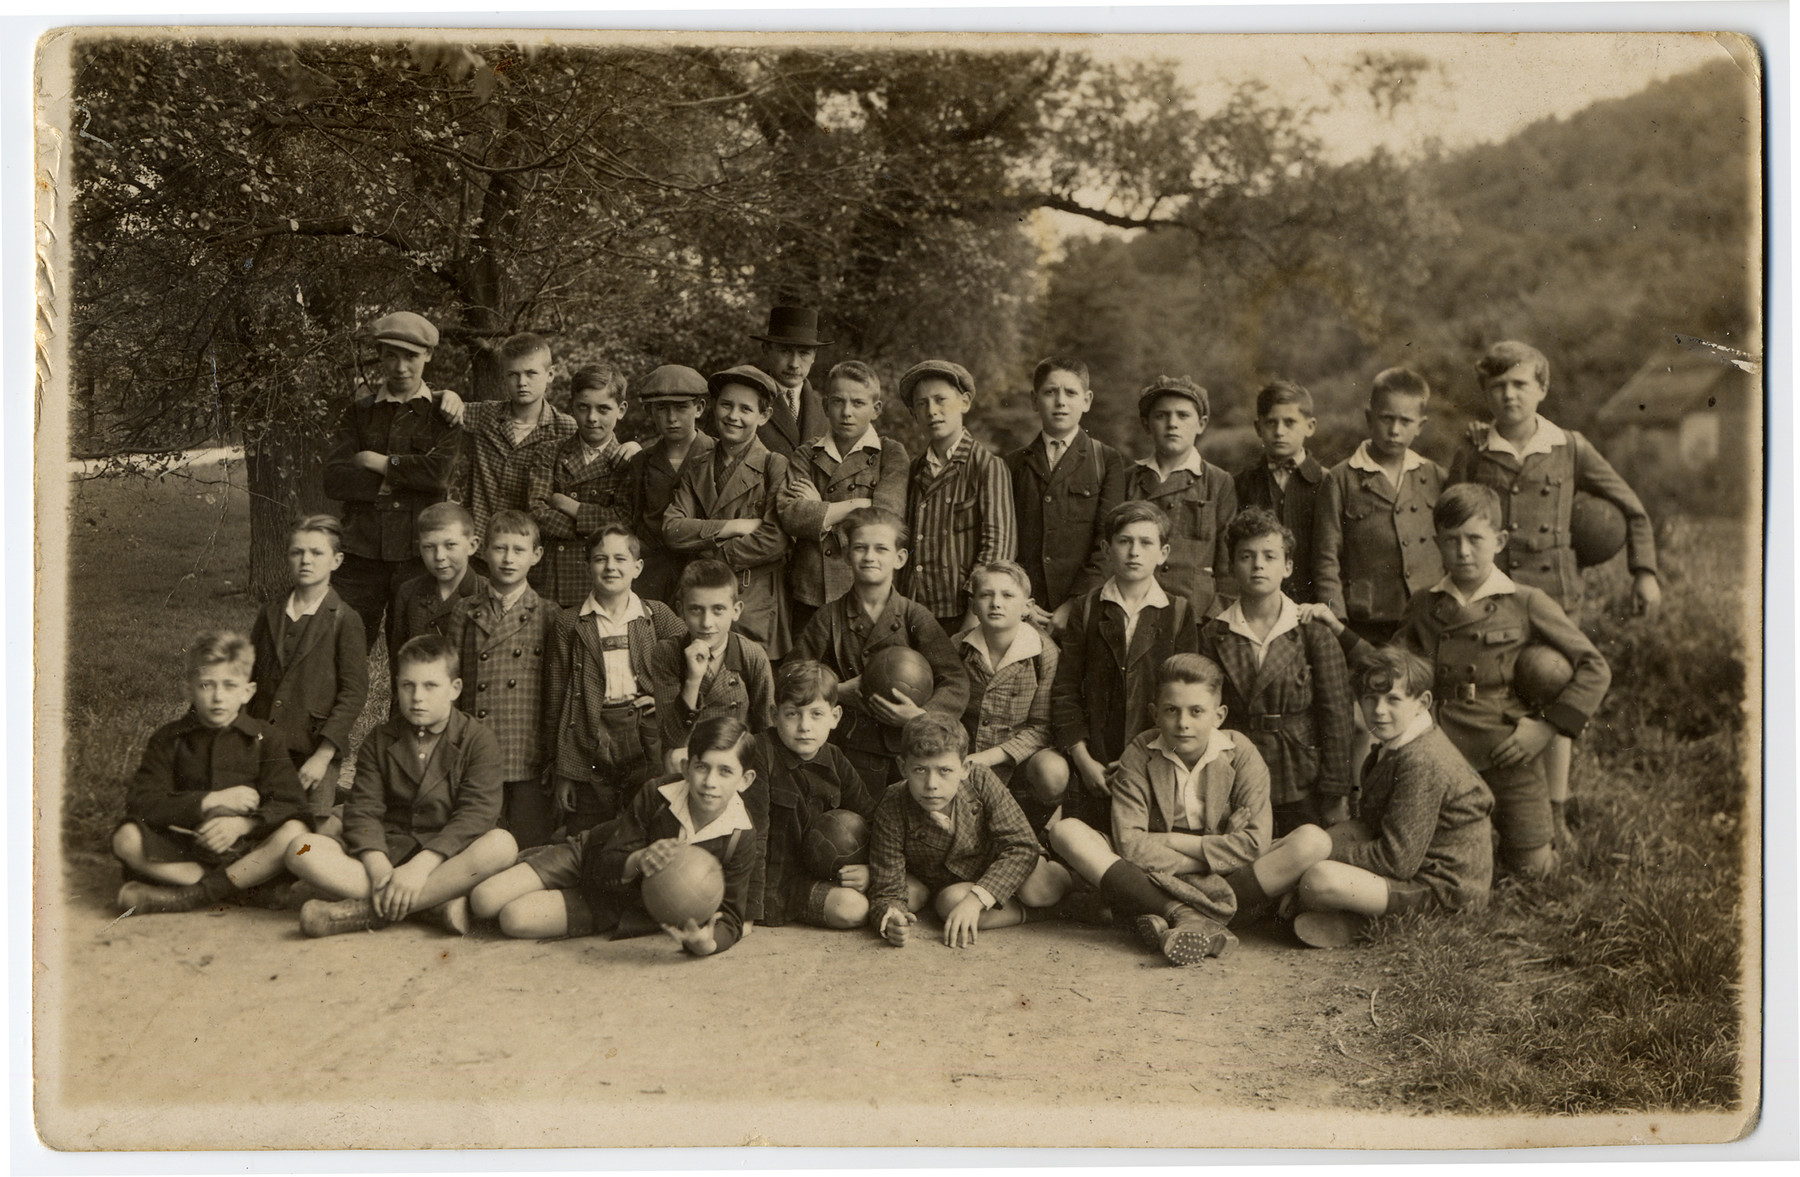 Group portrait of members of and elementary school on an outing in Vienna.  Sioma Lechtman is pictured in the middle row, second from the right.